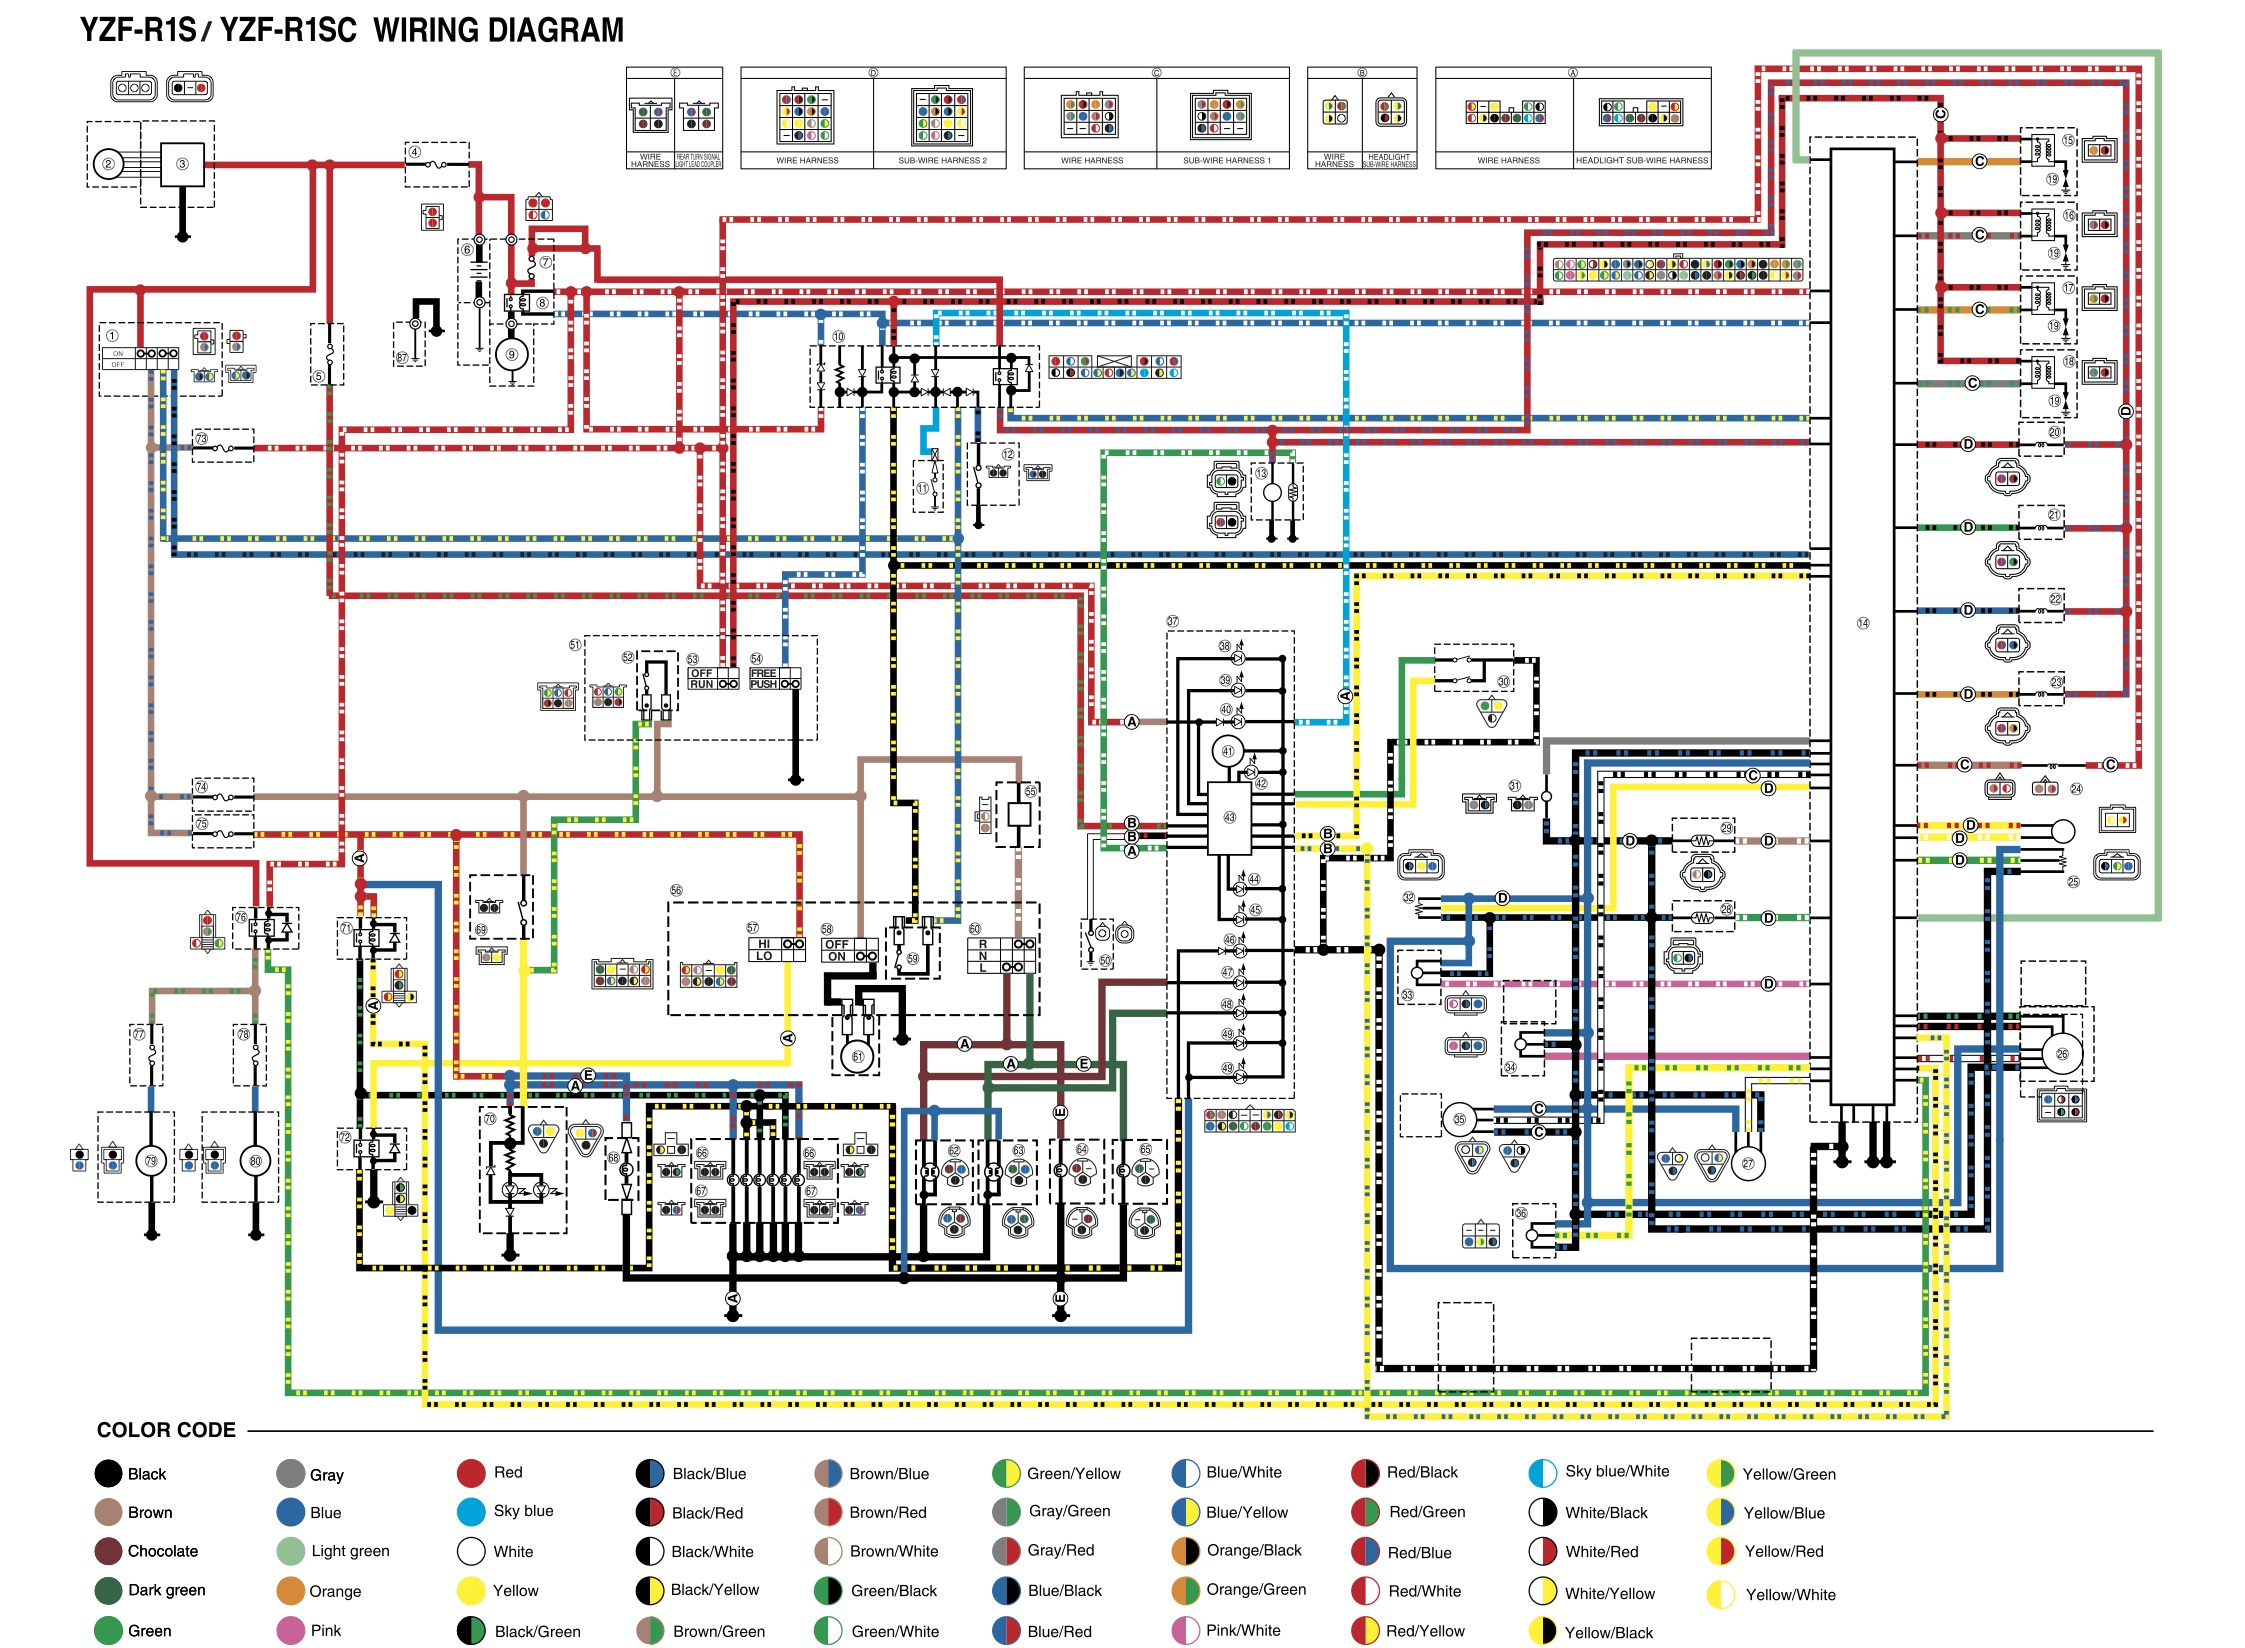 04R1_wiring_diagram r1 wiring help 2000 yamaha r1 wiring diagram at edmiracle.co